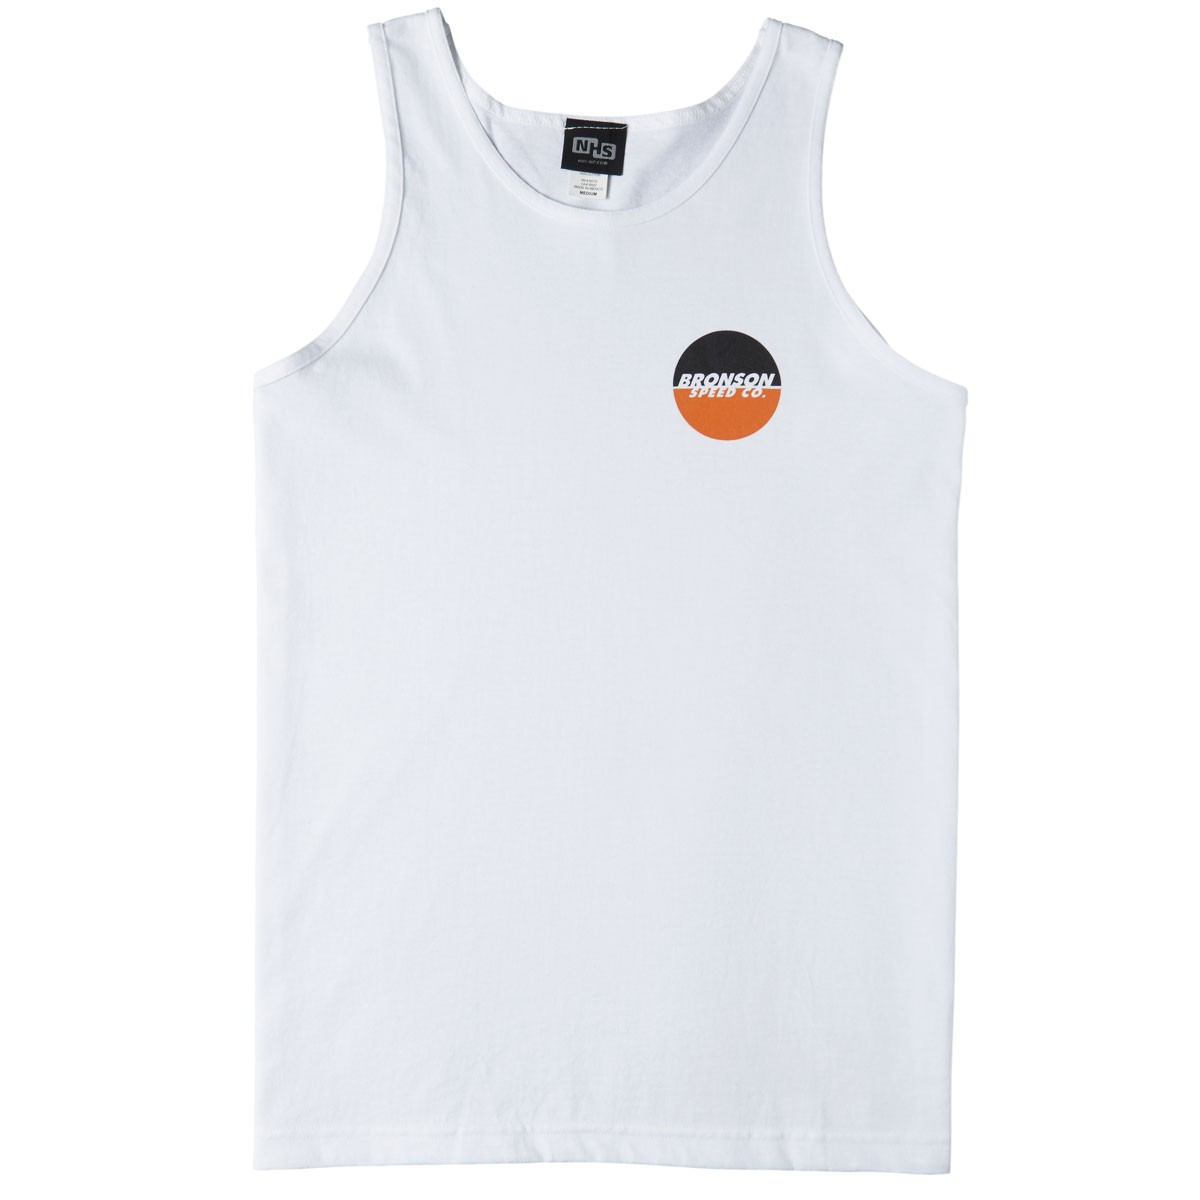 1dd28bdb271 Bronson Speed Co Spot Logo Tank Top - White